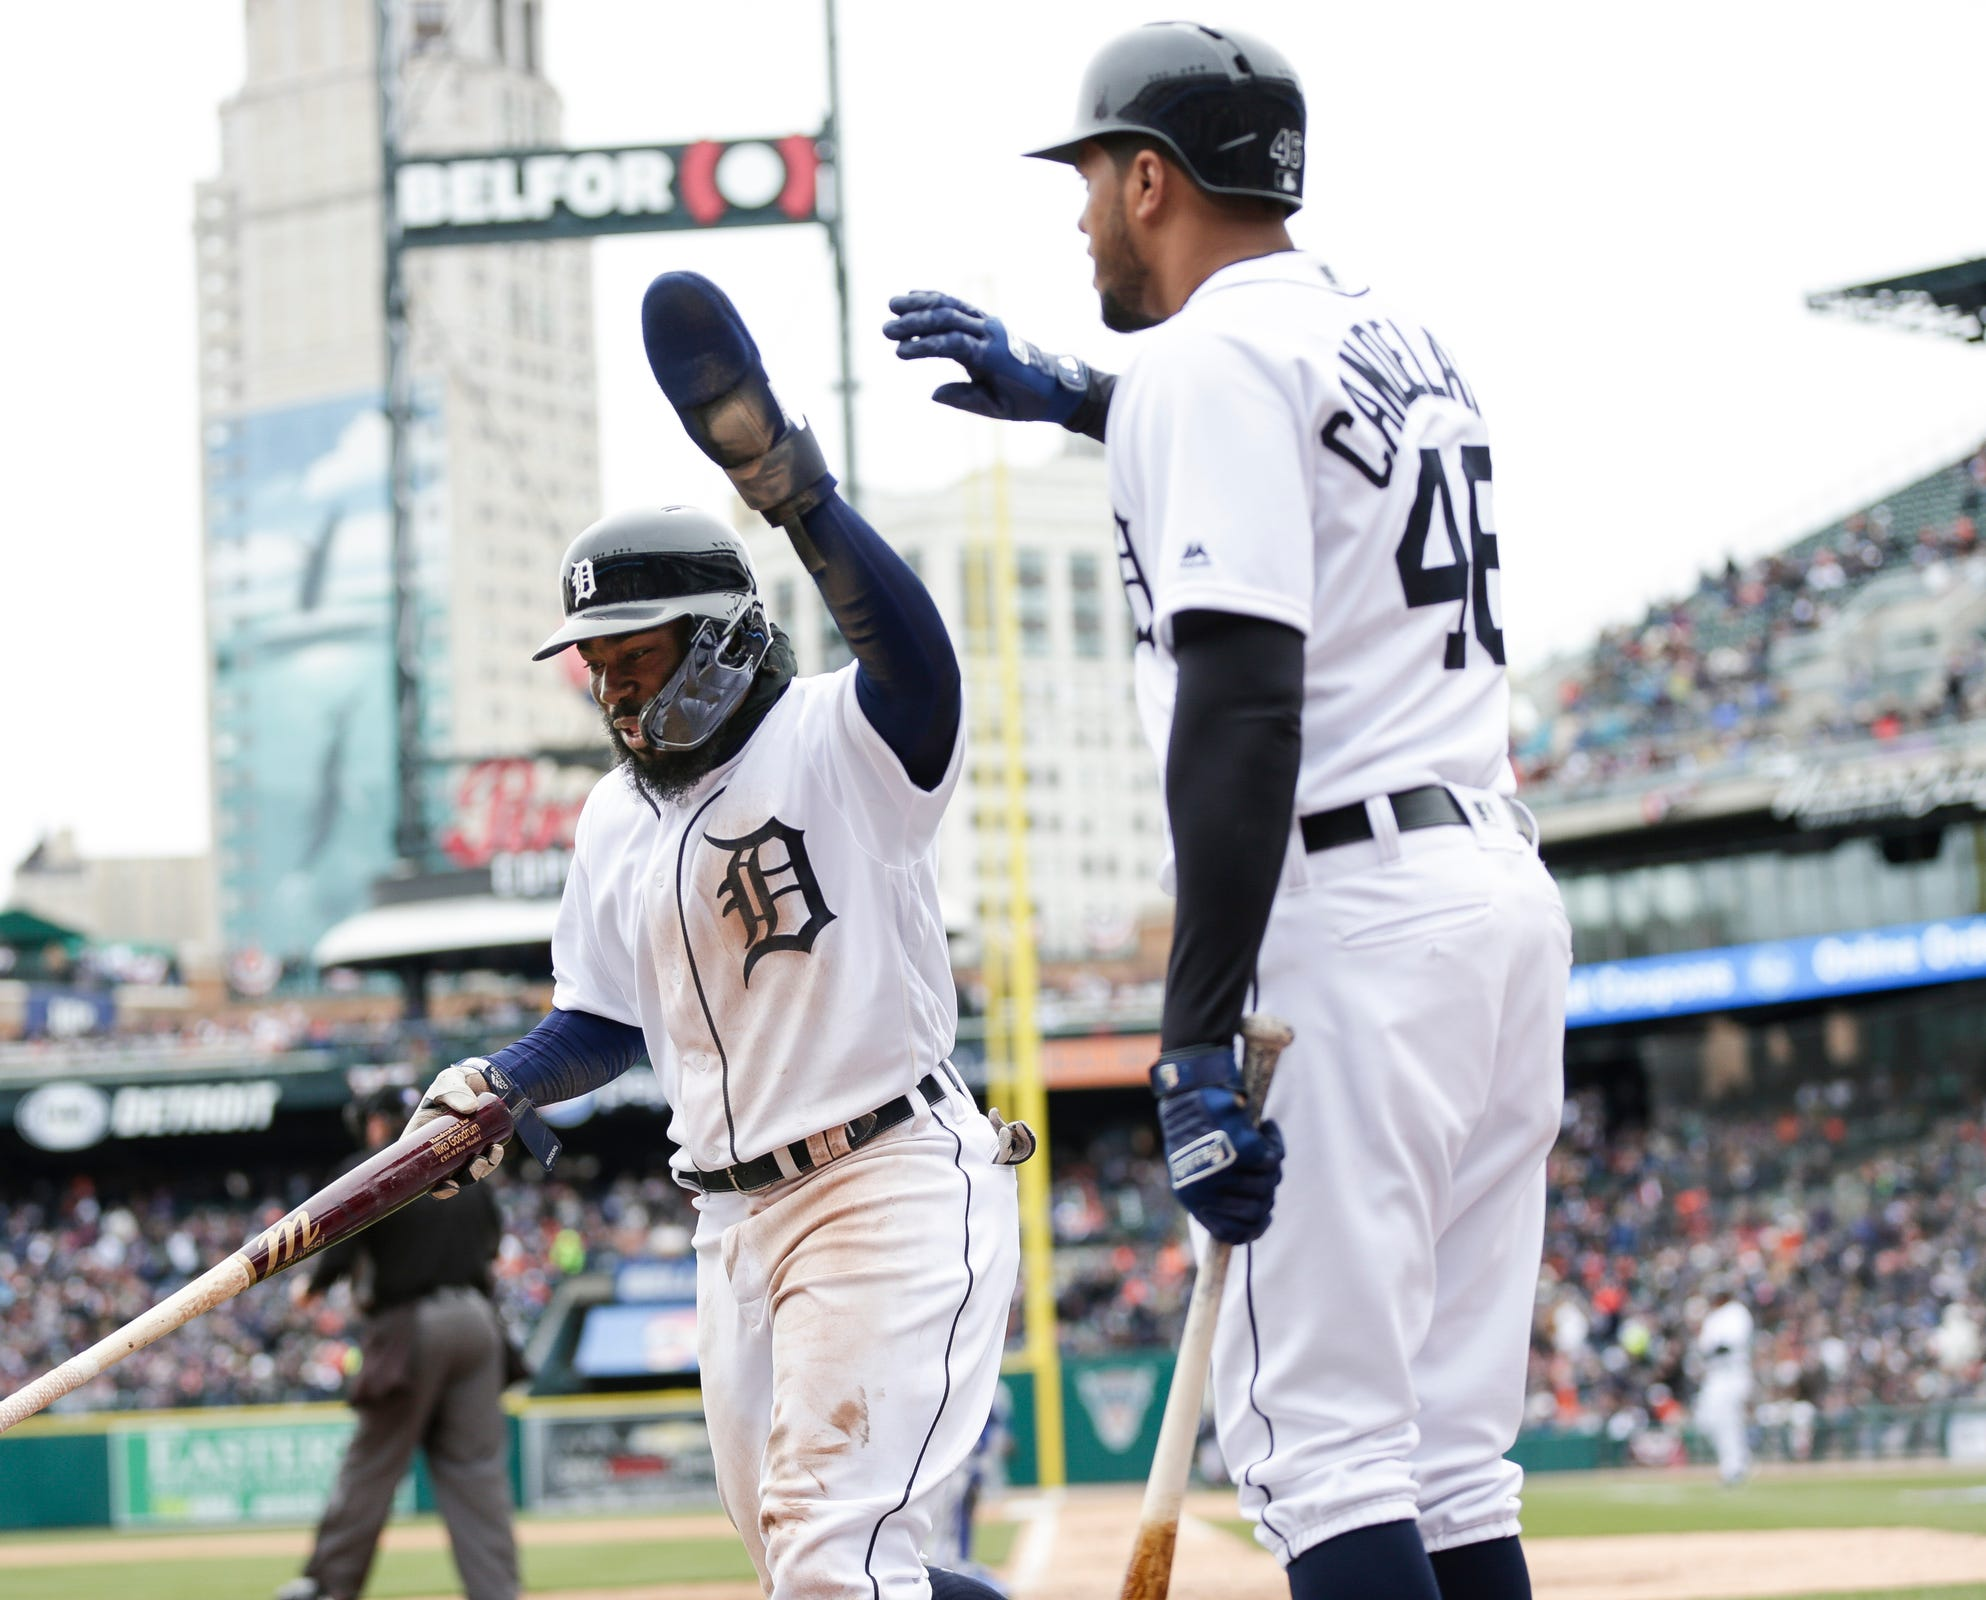 Tigers second baseman Josh Harrison celebrates a run with third baseman Jeimer Candelario during the fifth inning at Comerica Park on Thursday, April 4, 2019.